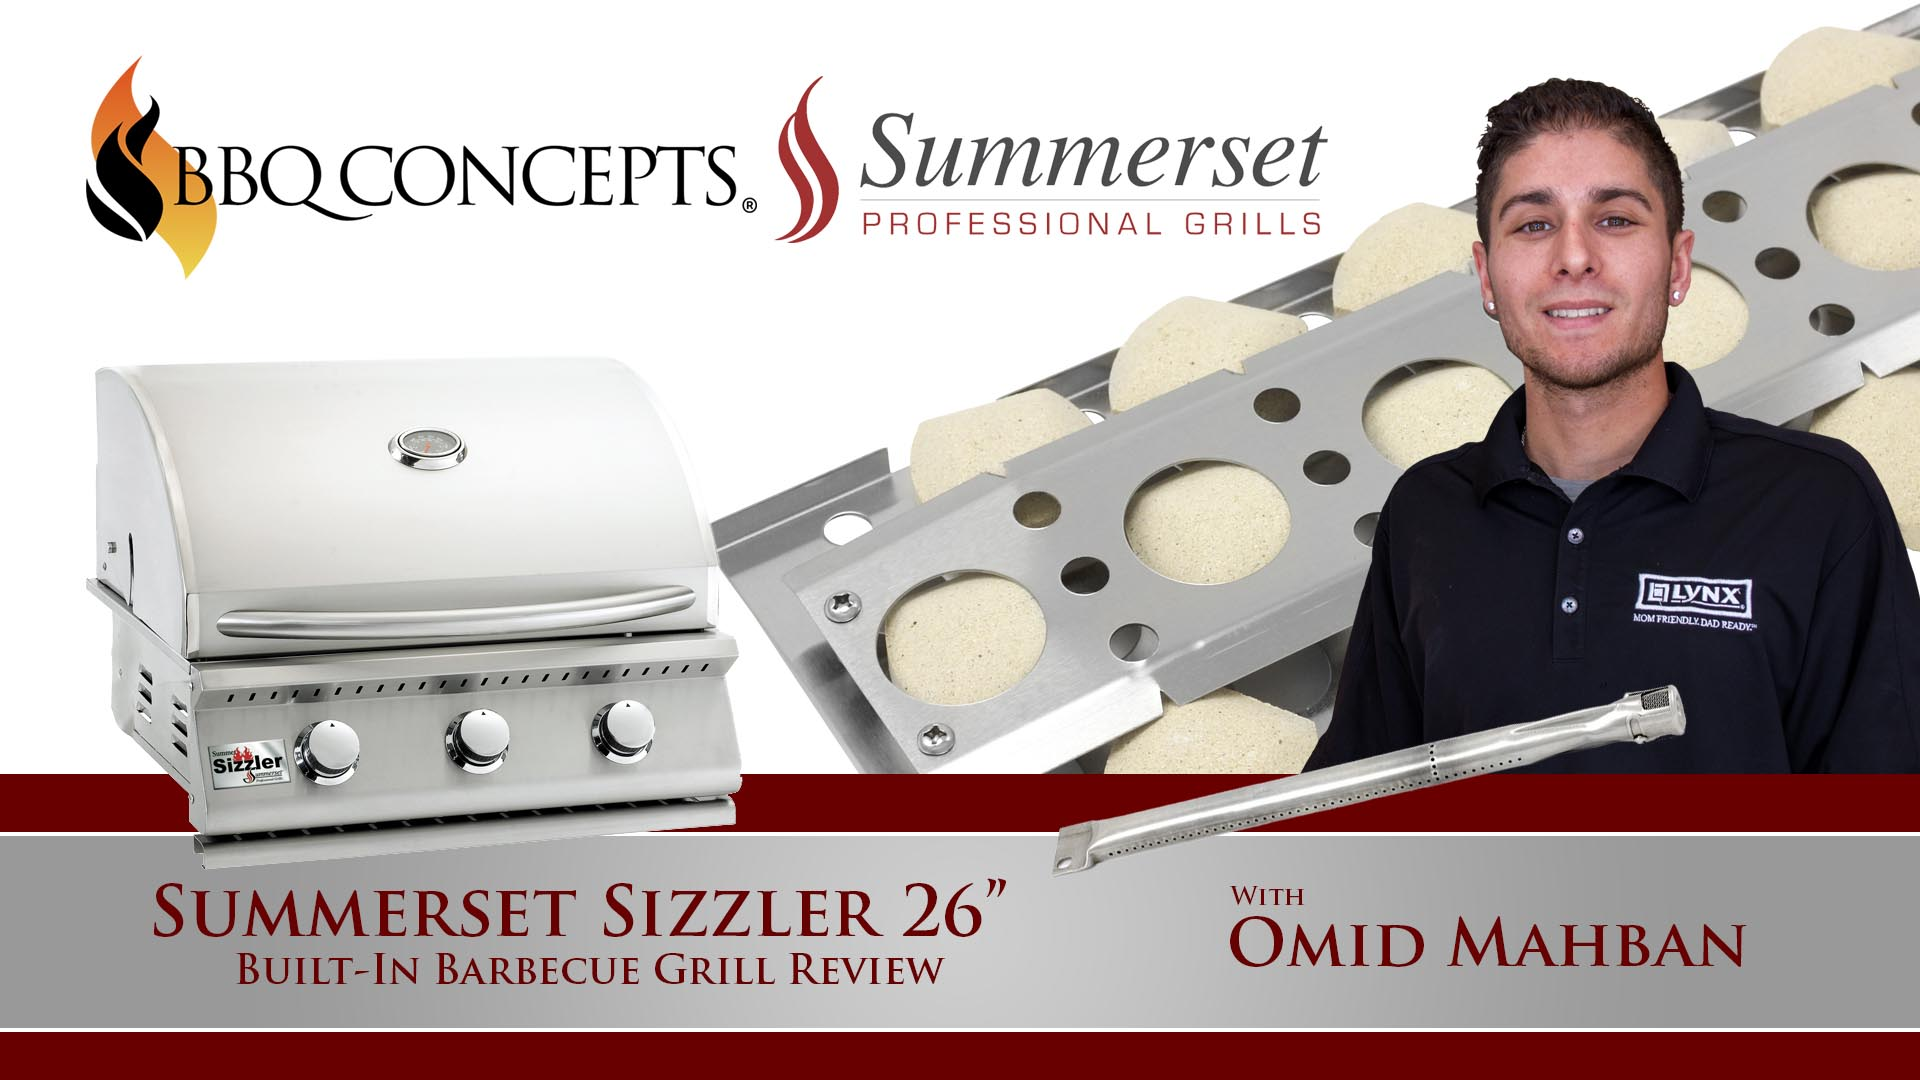 Summerset Sizzler 26 Inch Barbecue Grill Review - Featured by Omid Mahban of BBQ Concepts of Las Vegas, Nevada